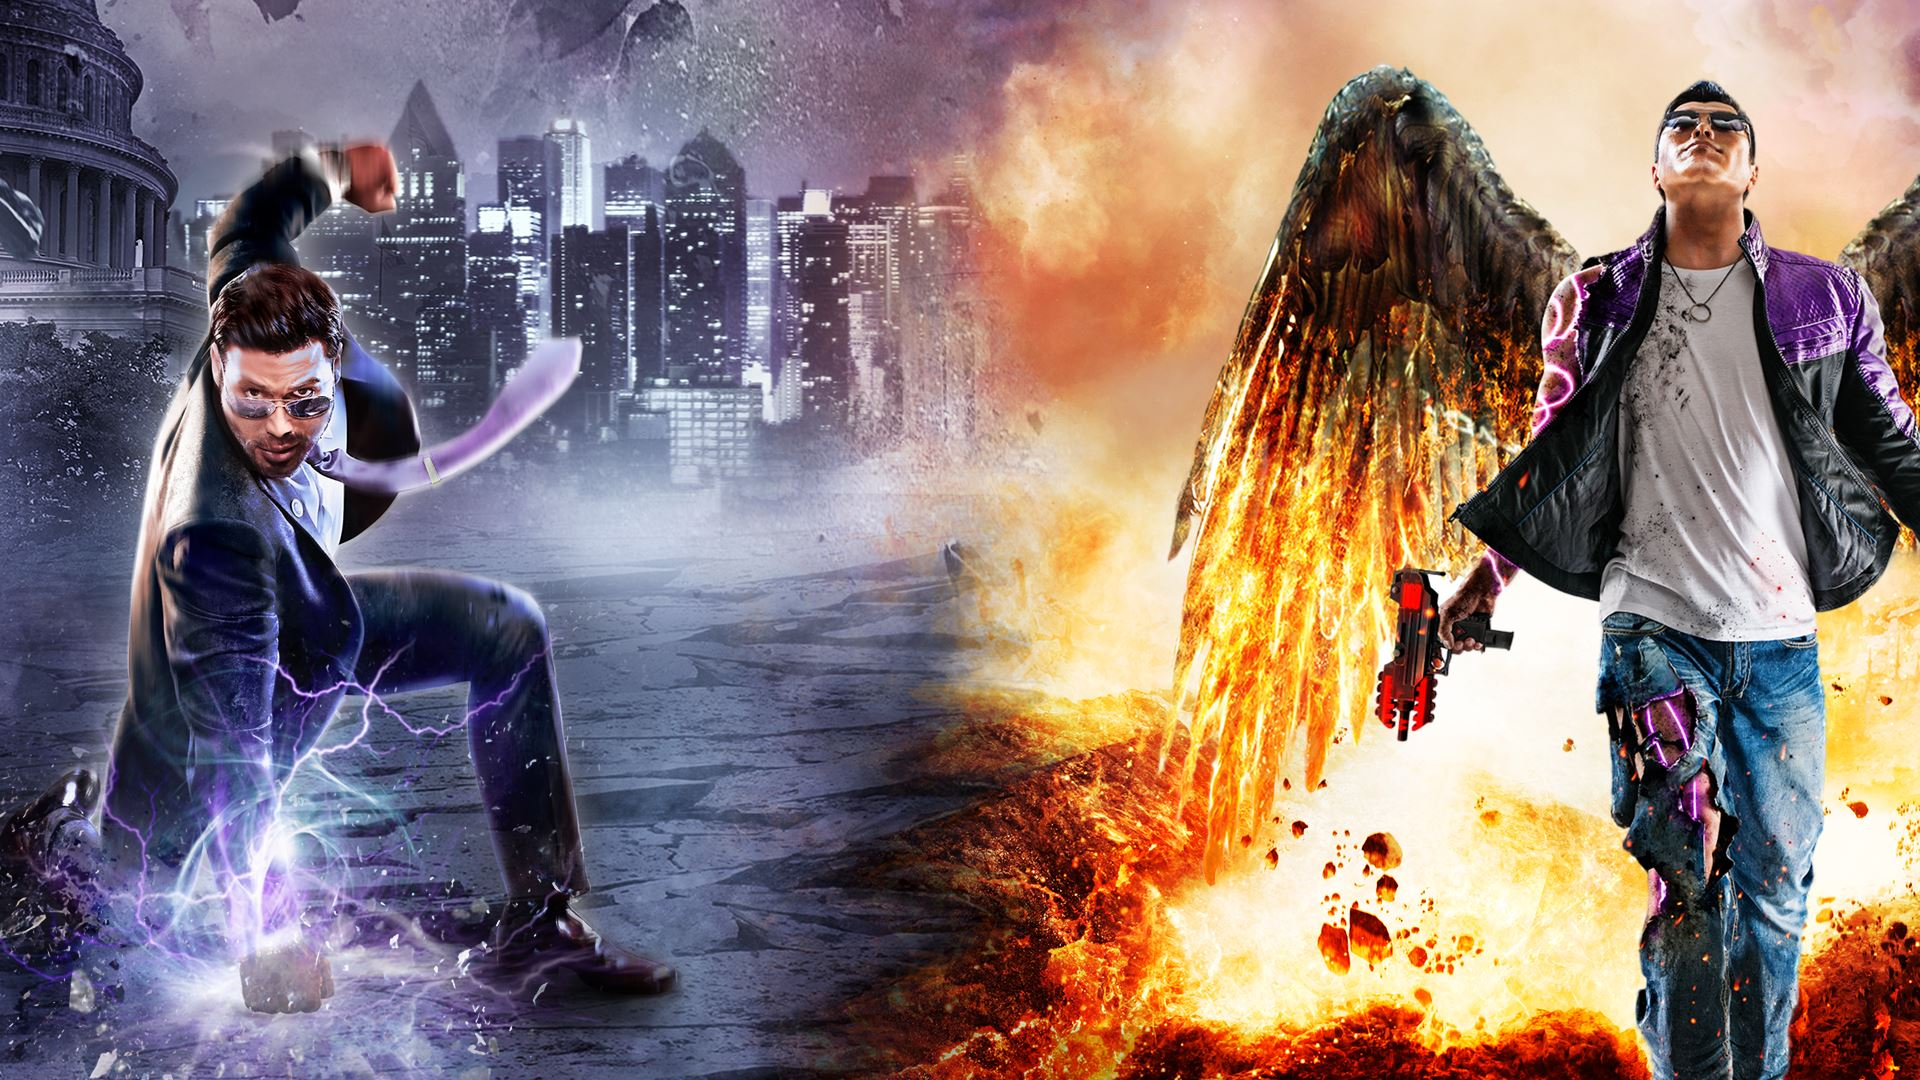 Saints Row Gat Out Of Hell Fondo De Pantalla Hd Fondo De